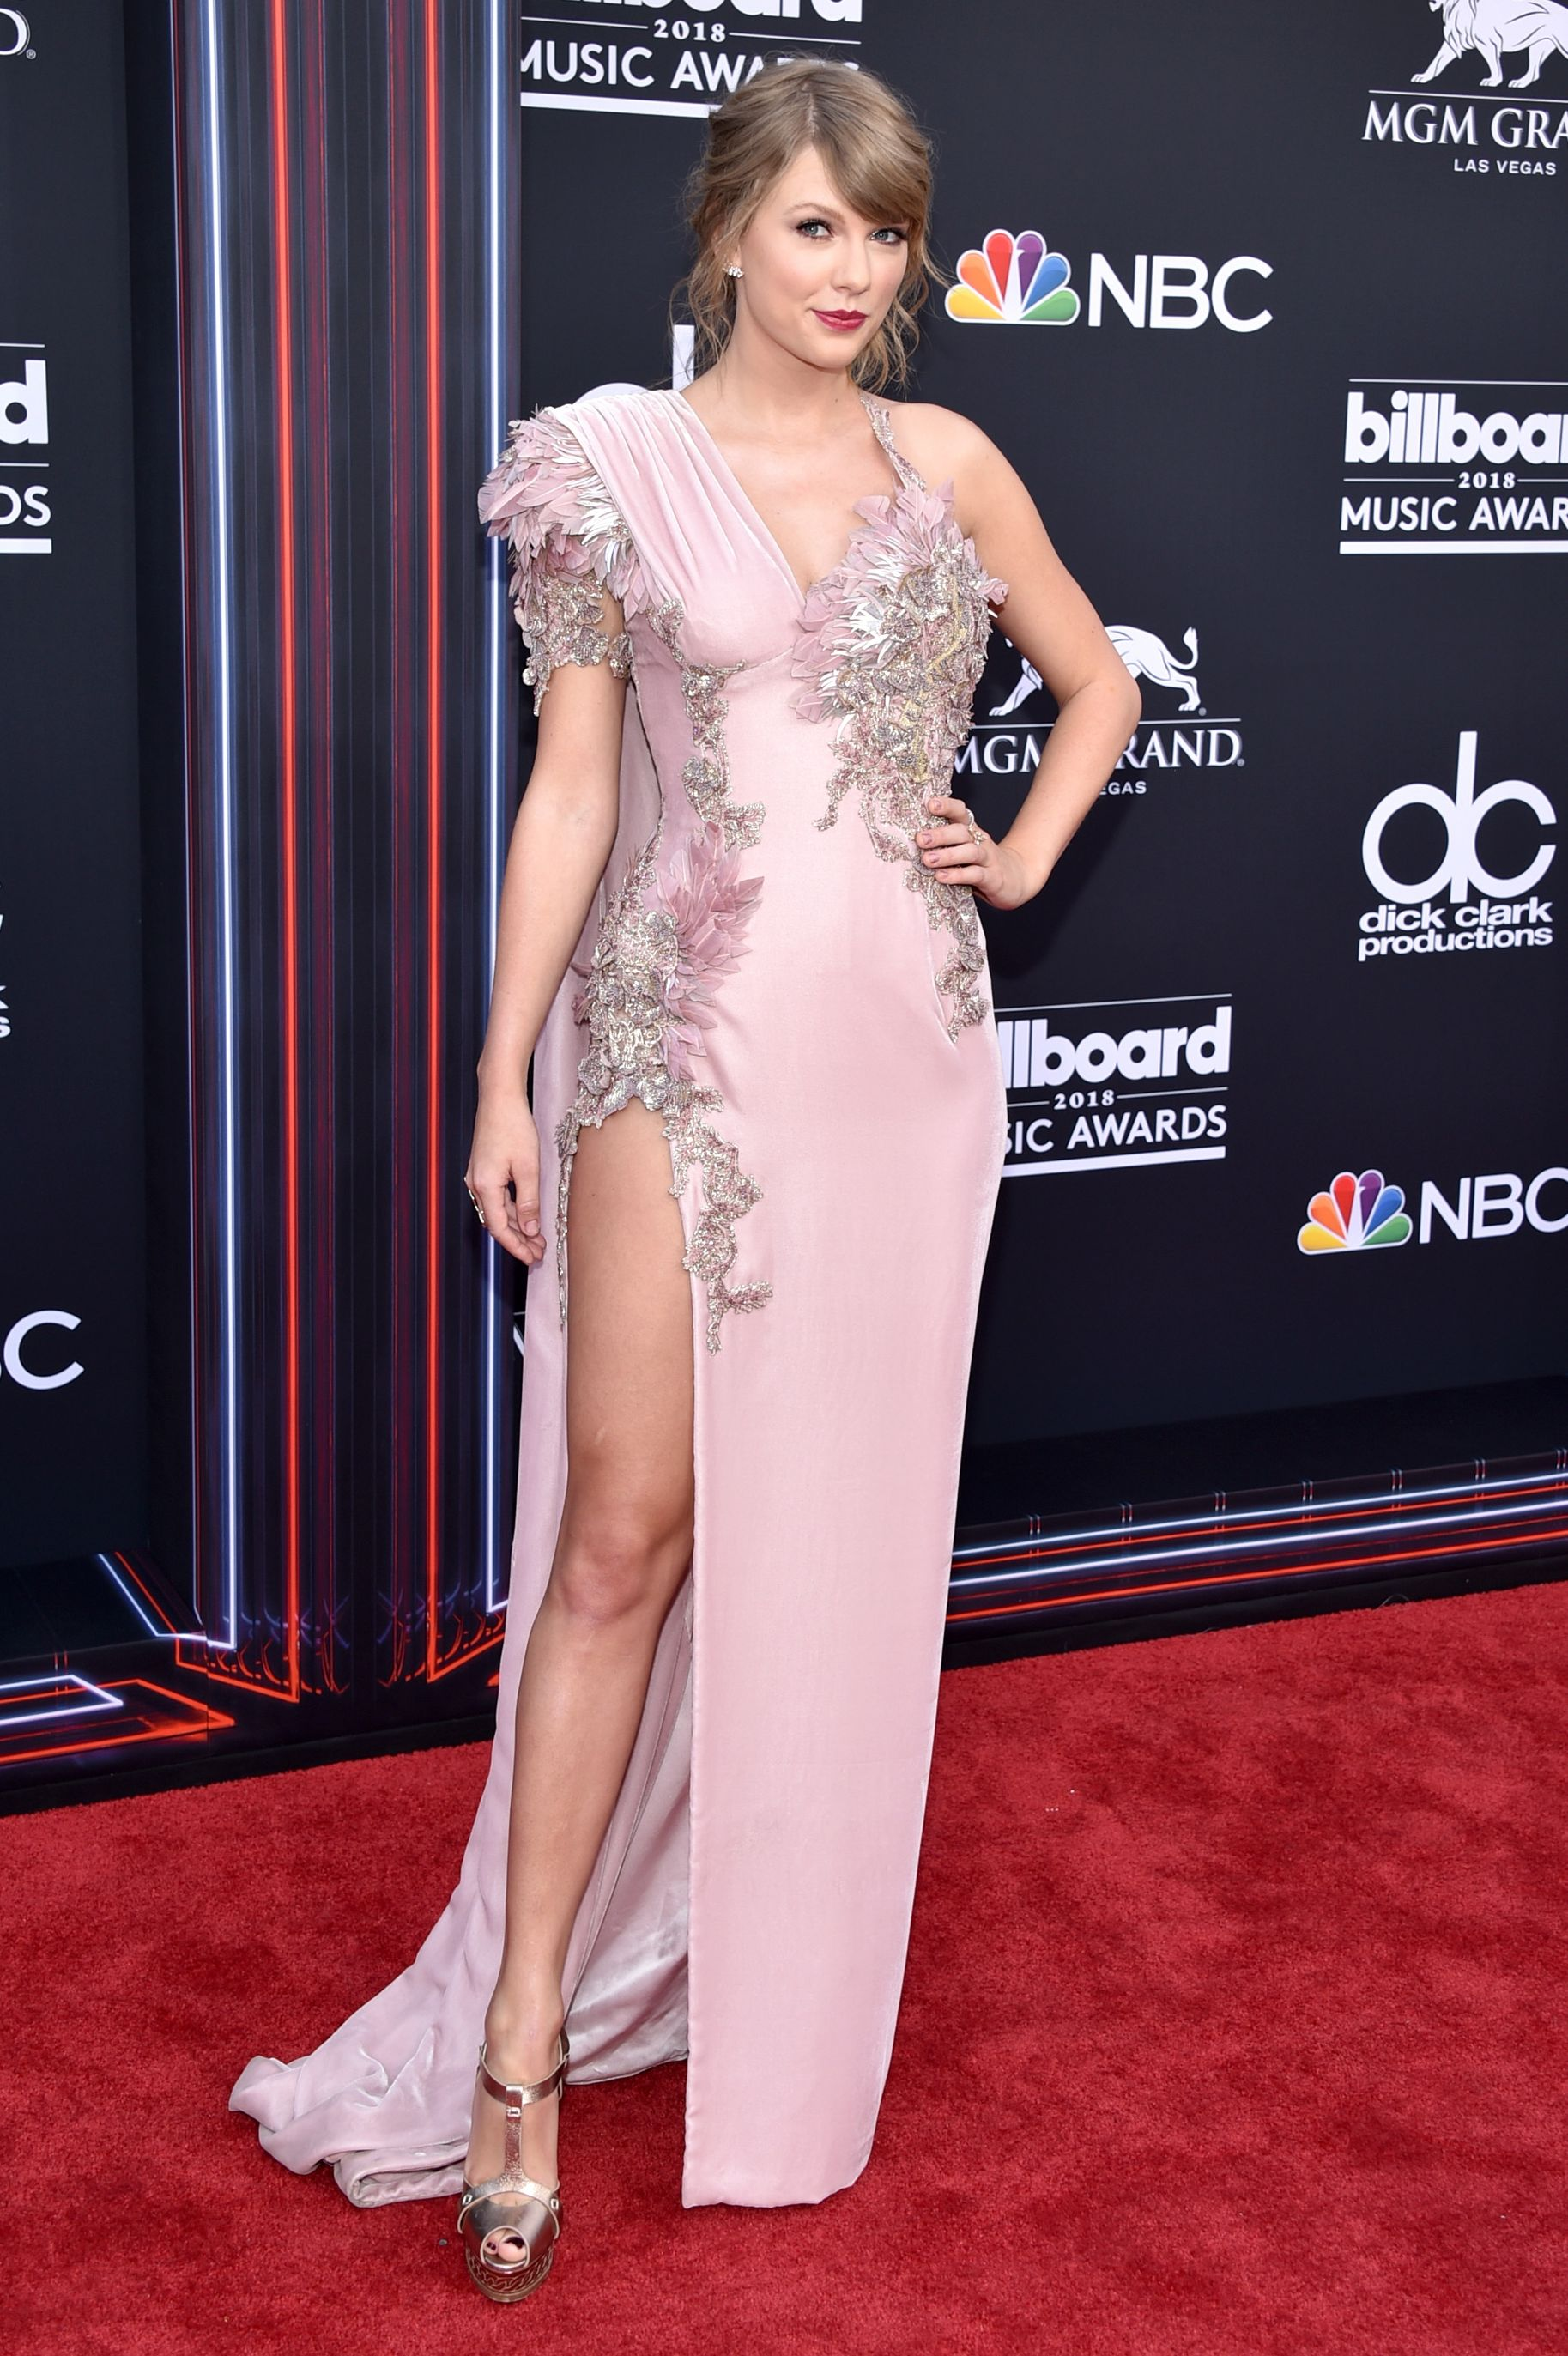 taylor swift 2018 billboard music awards dress